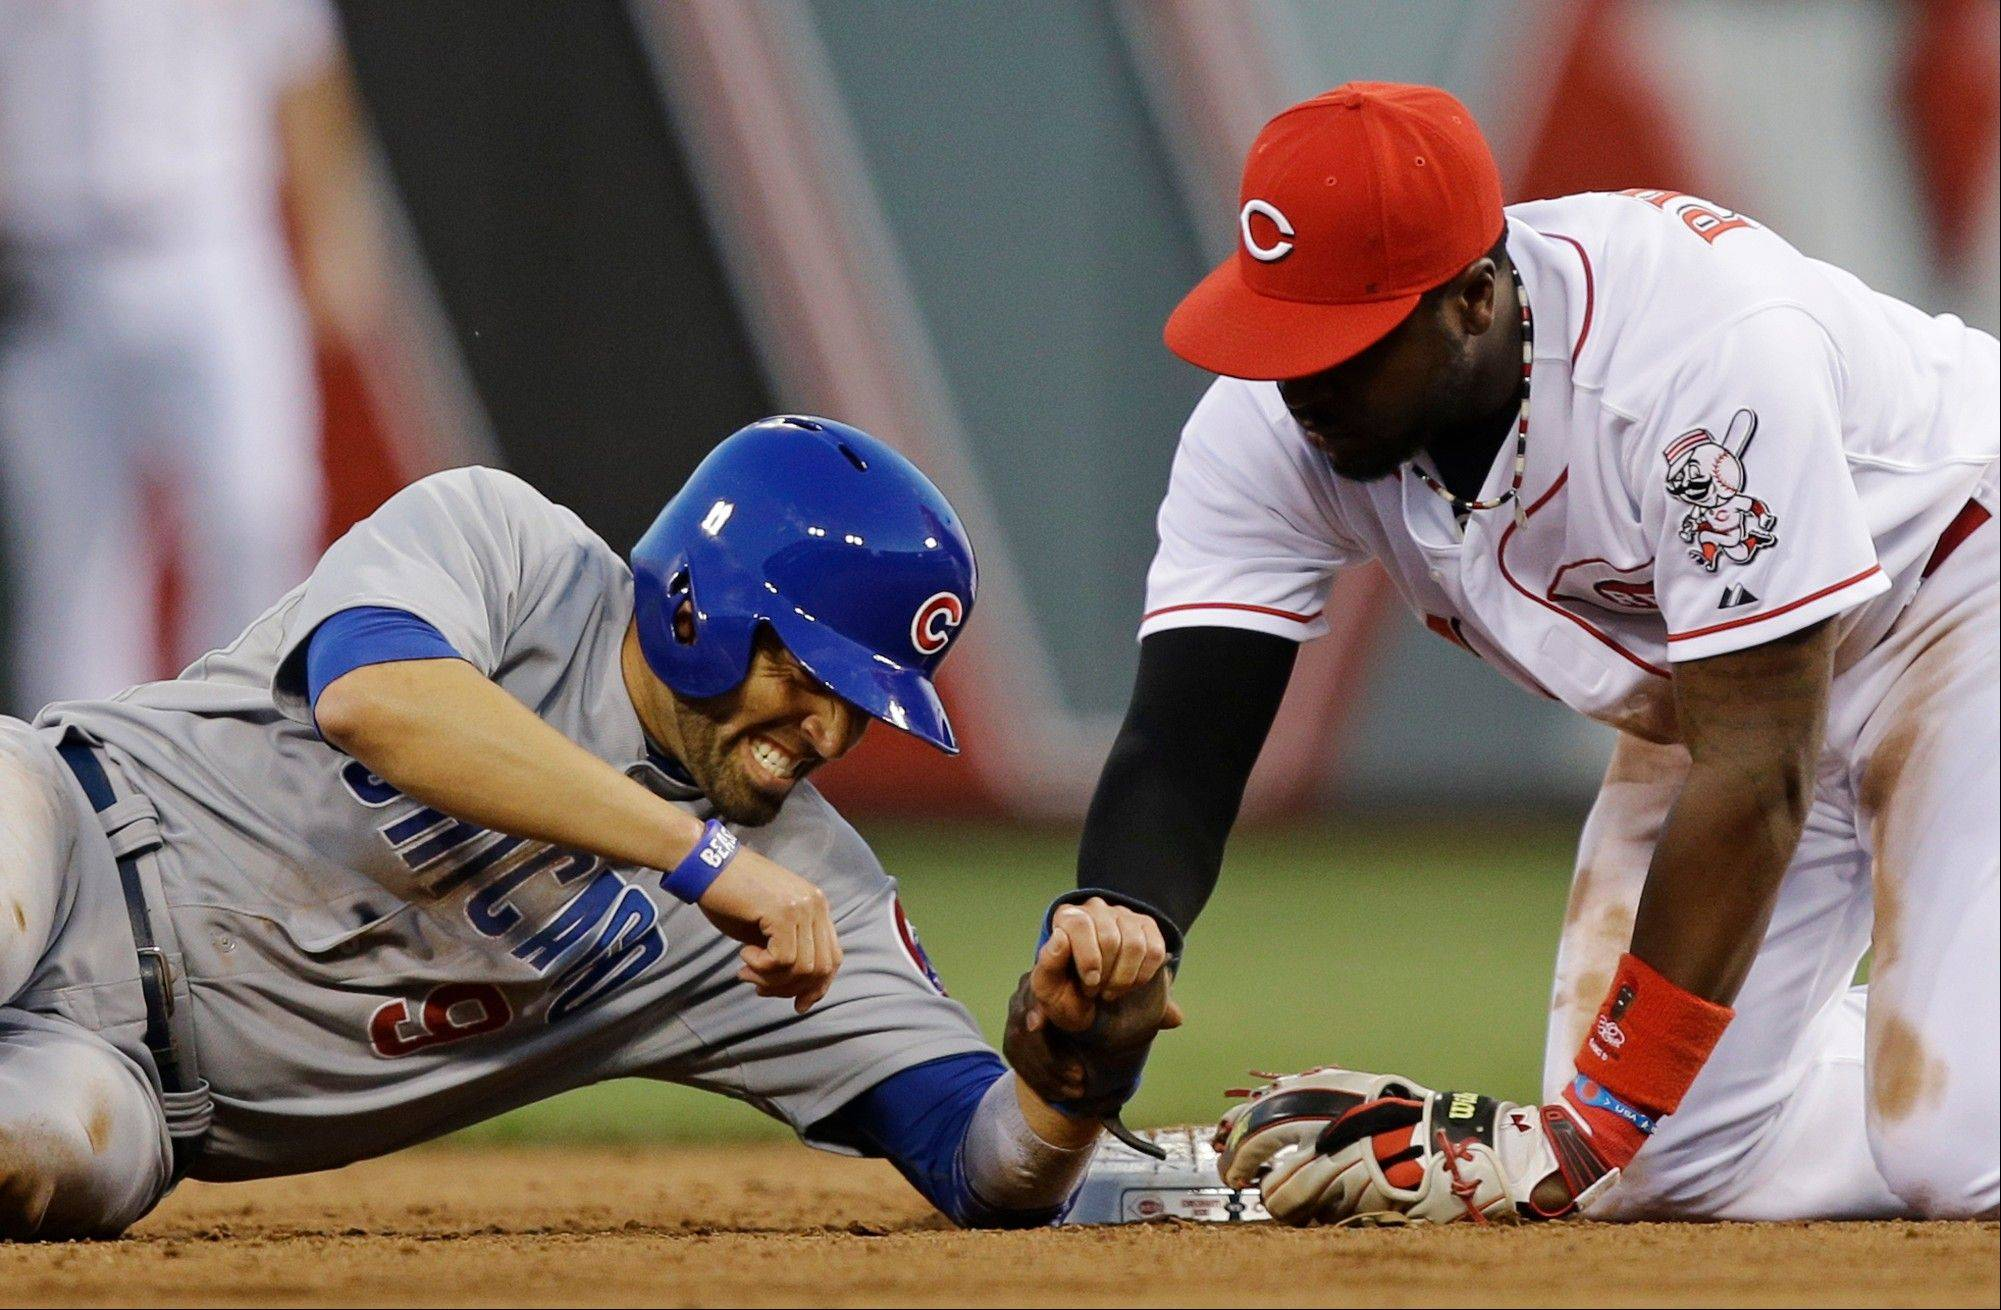 Chicago Cubs' David DeJesus (9) reacts after being forced out at second base by Cincinnati Reds second baseman Brandon Phillips in the fifth inning of a baseball game on Friday, May 24, 2013, in Cincinnati. (AP Photo/Al Behrman)